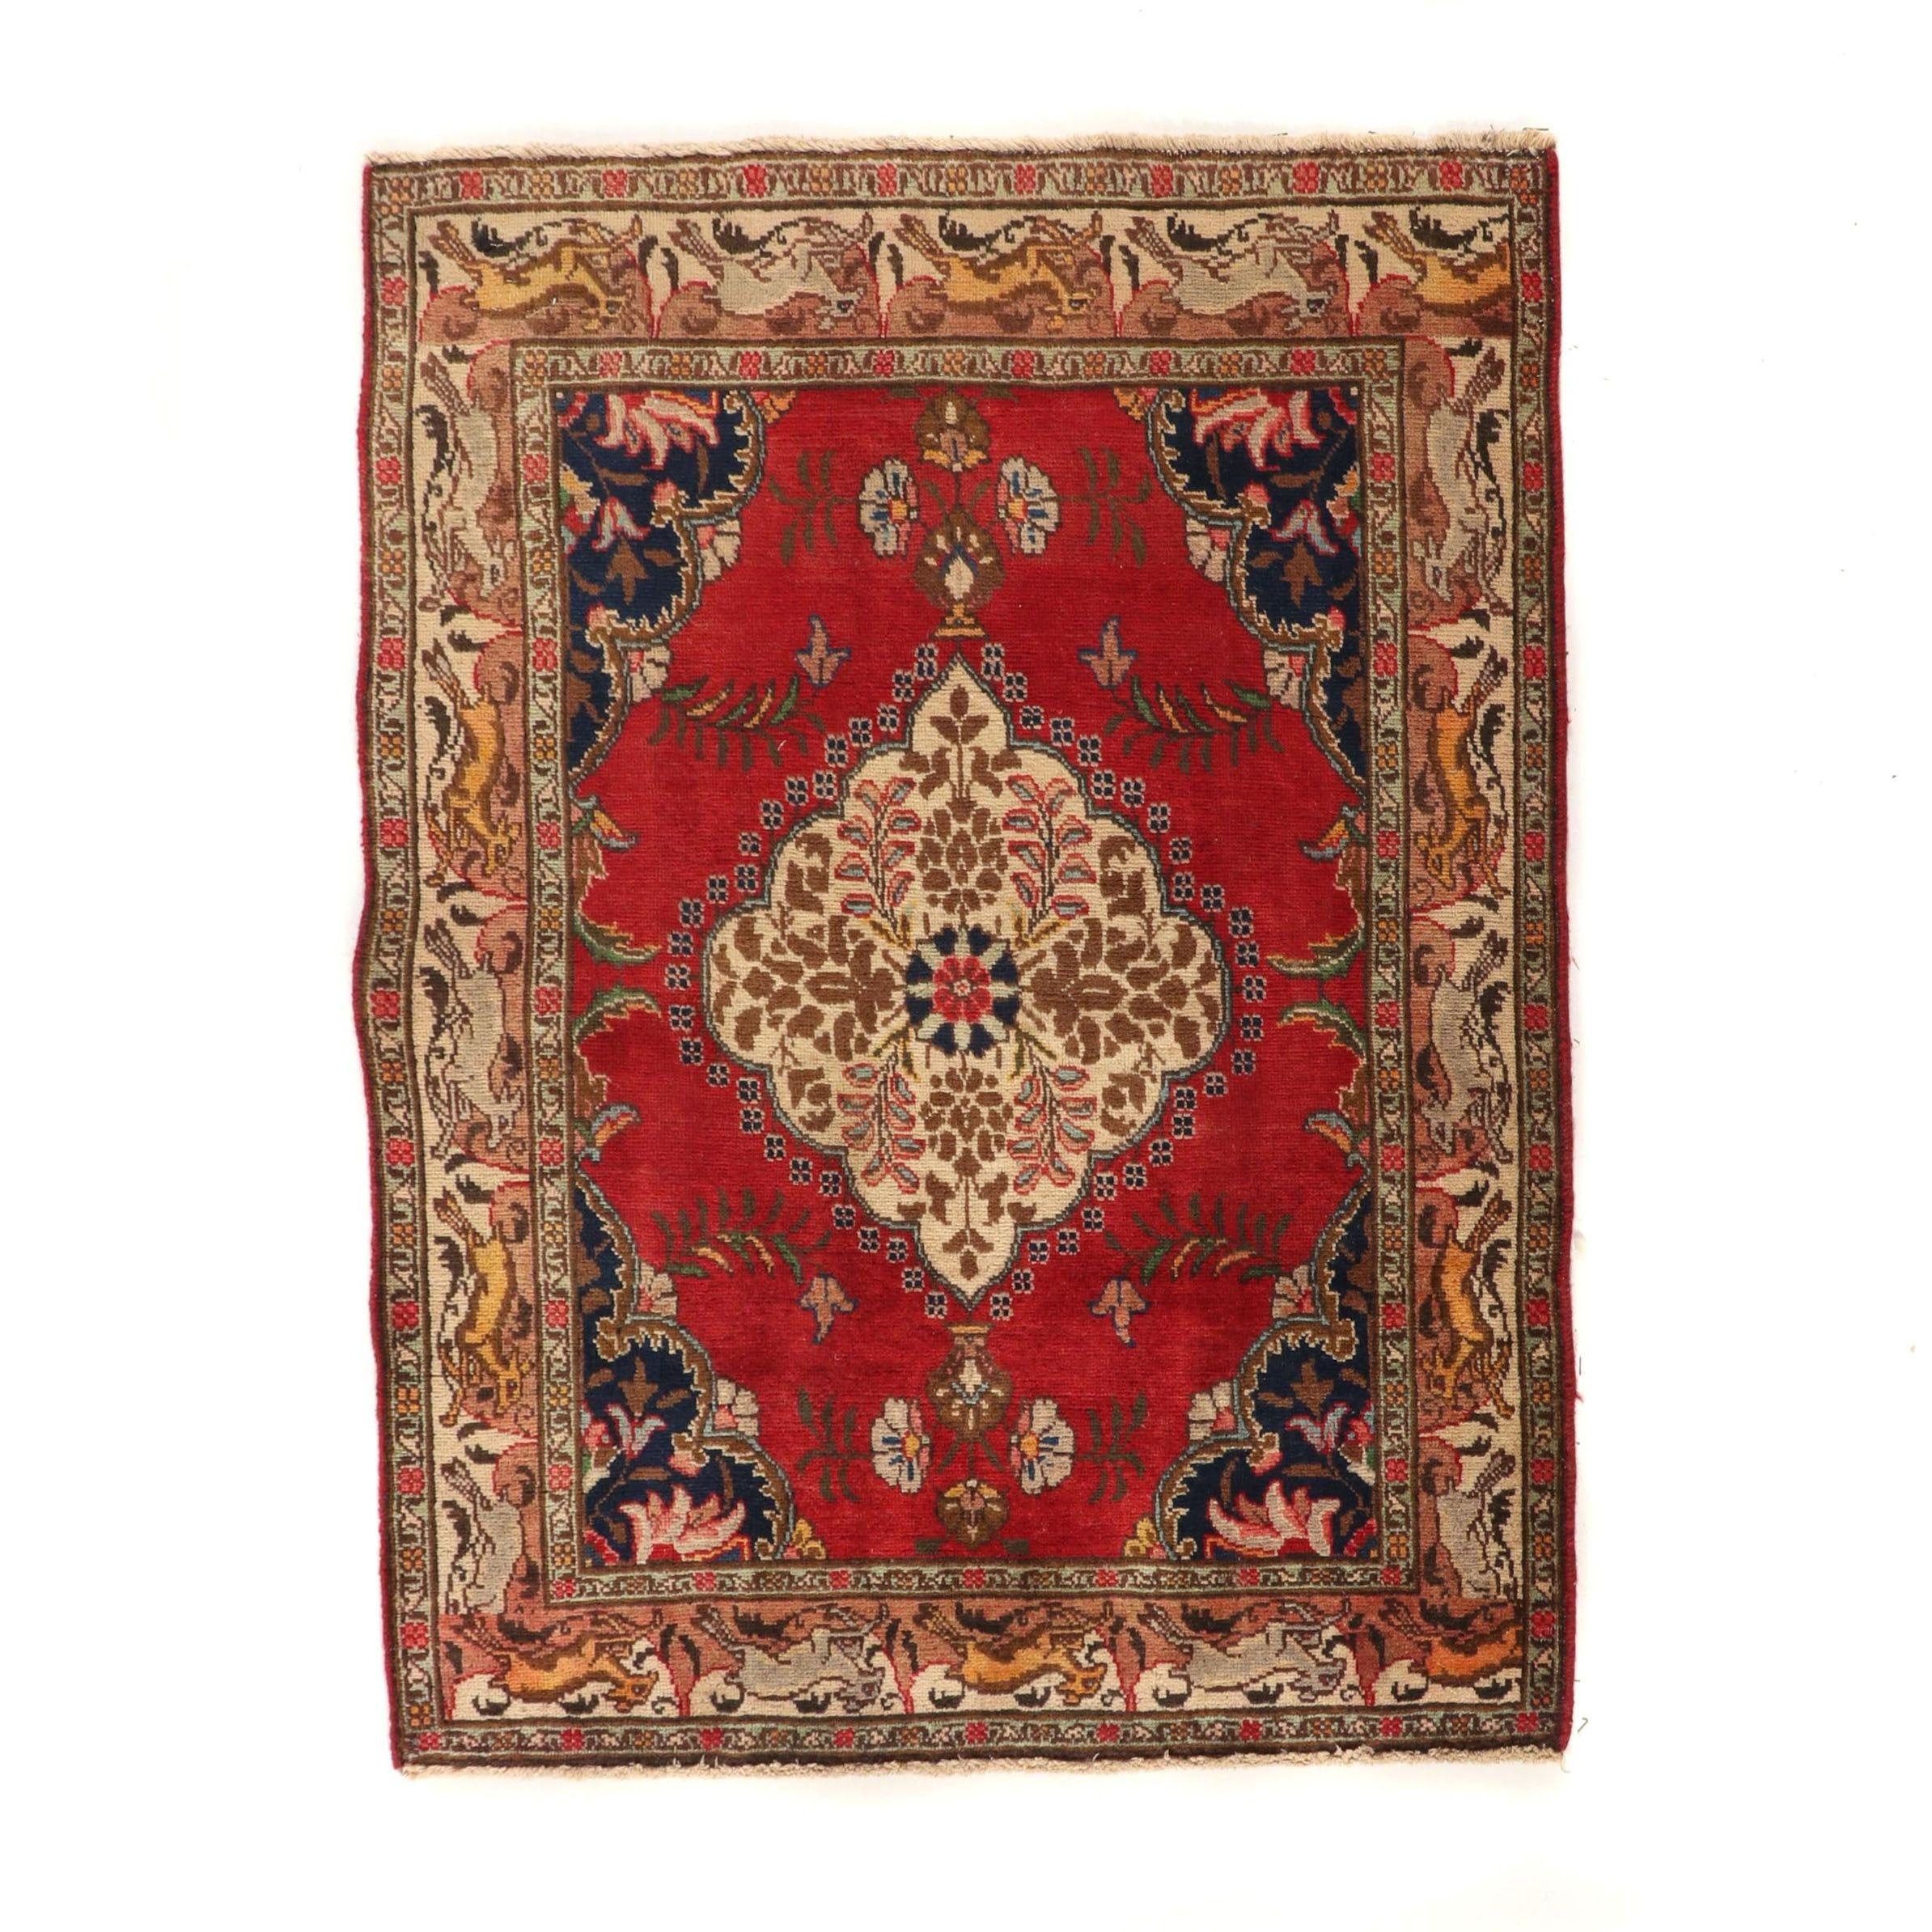 Hand-Knotted Indo-Persian Tabriz Wool Rug with Pictorial Border